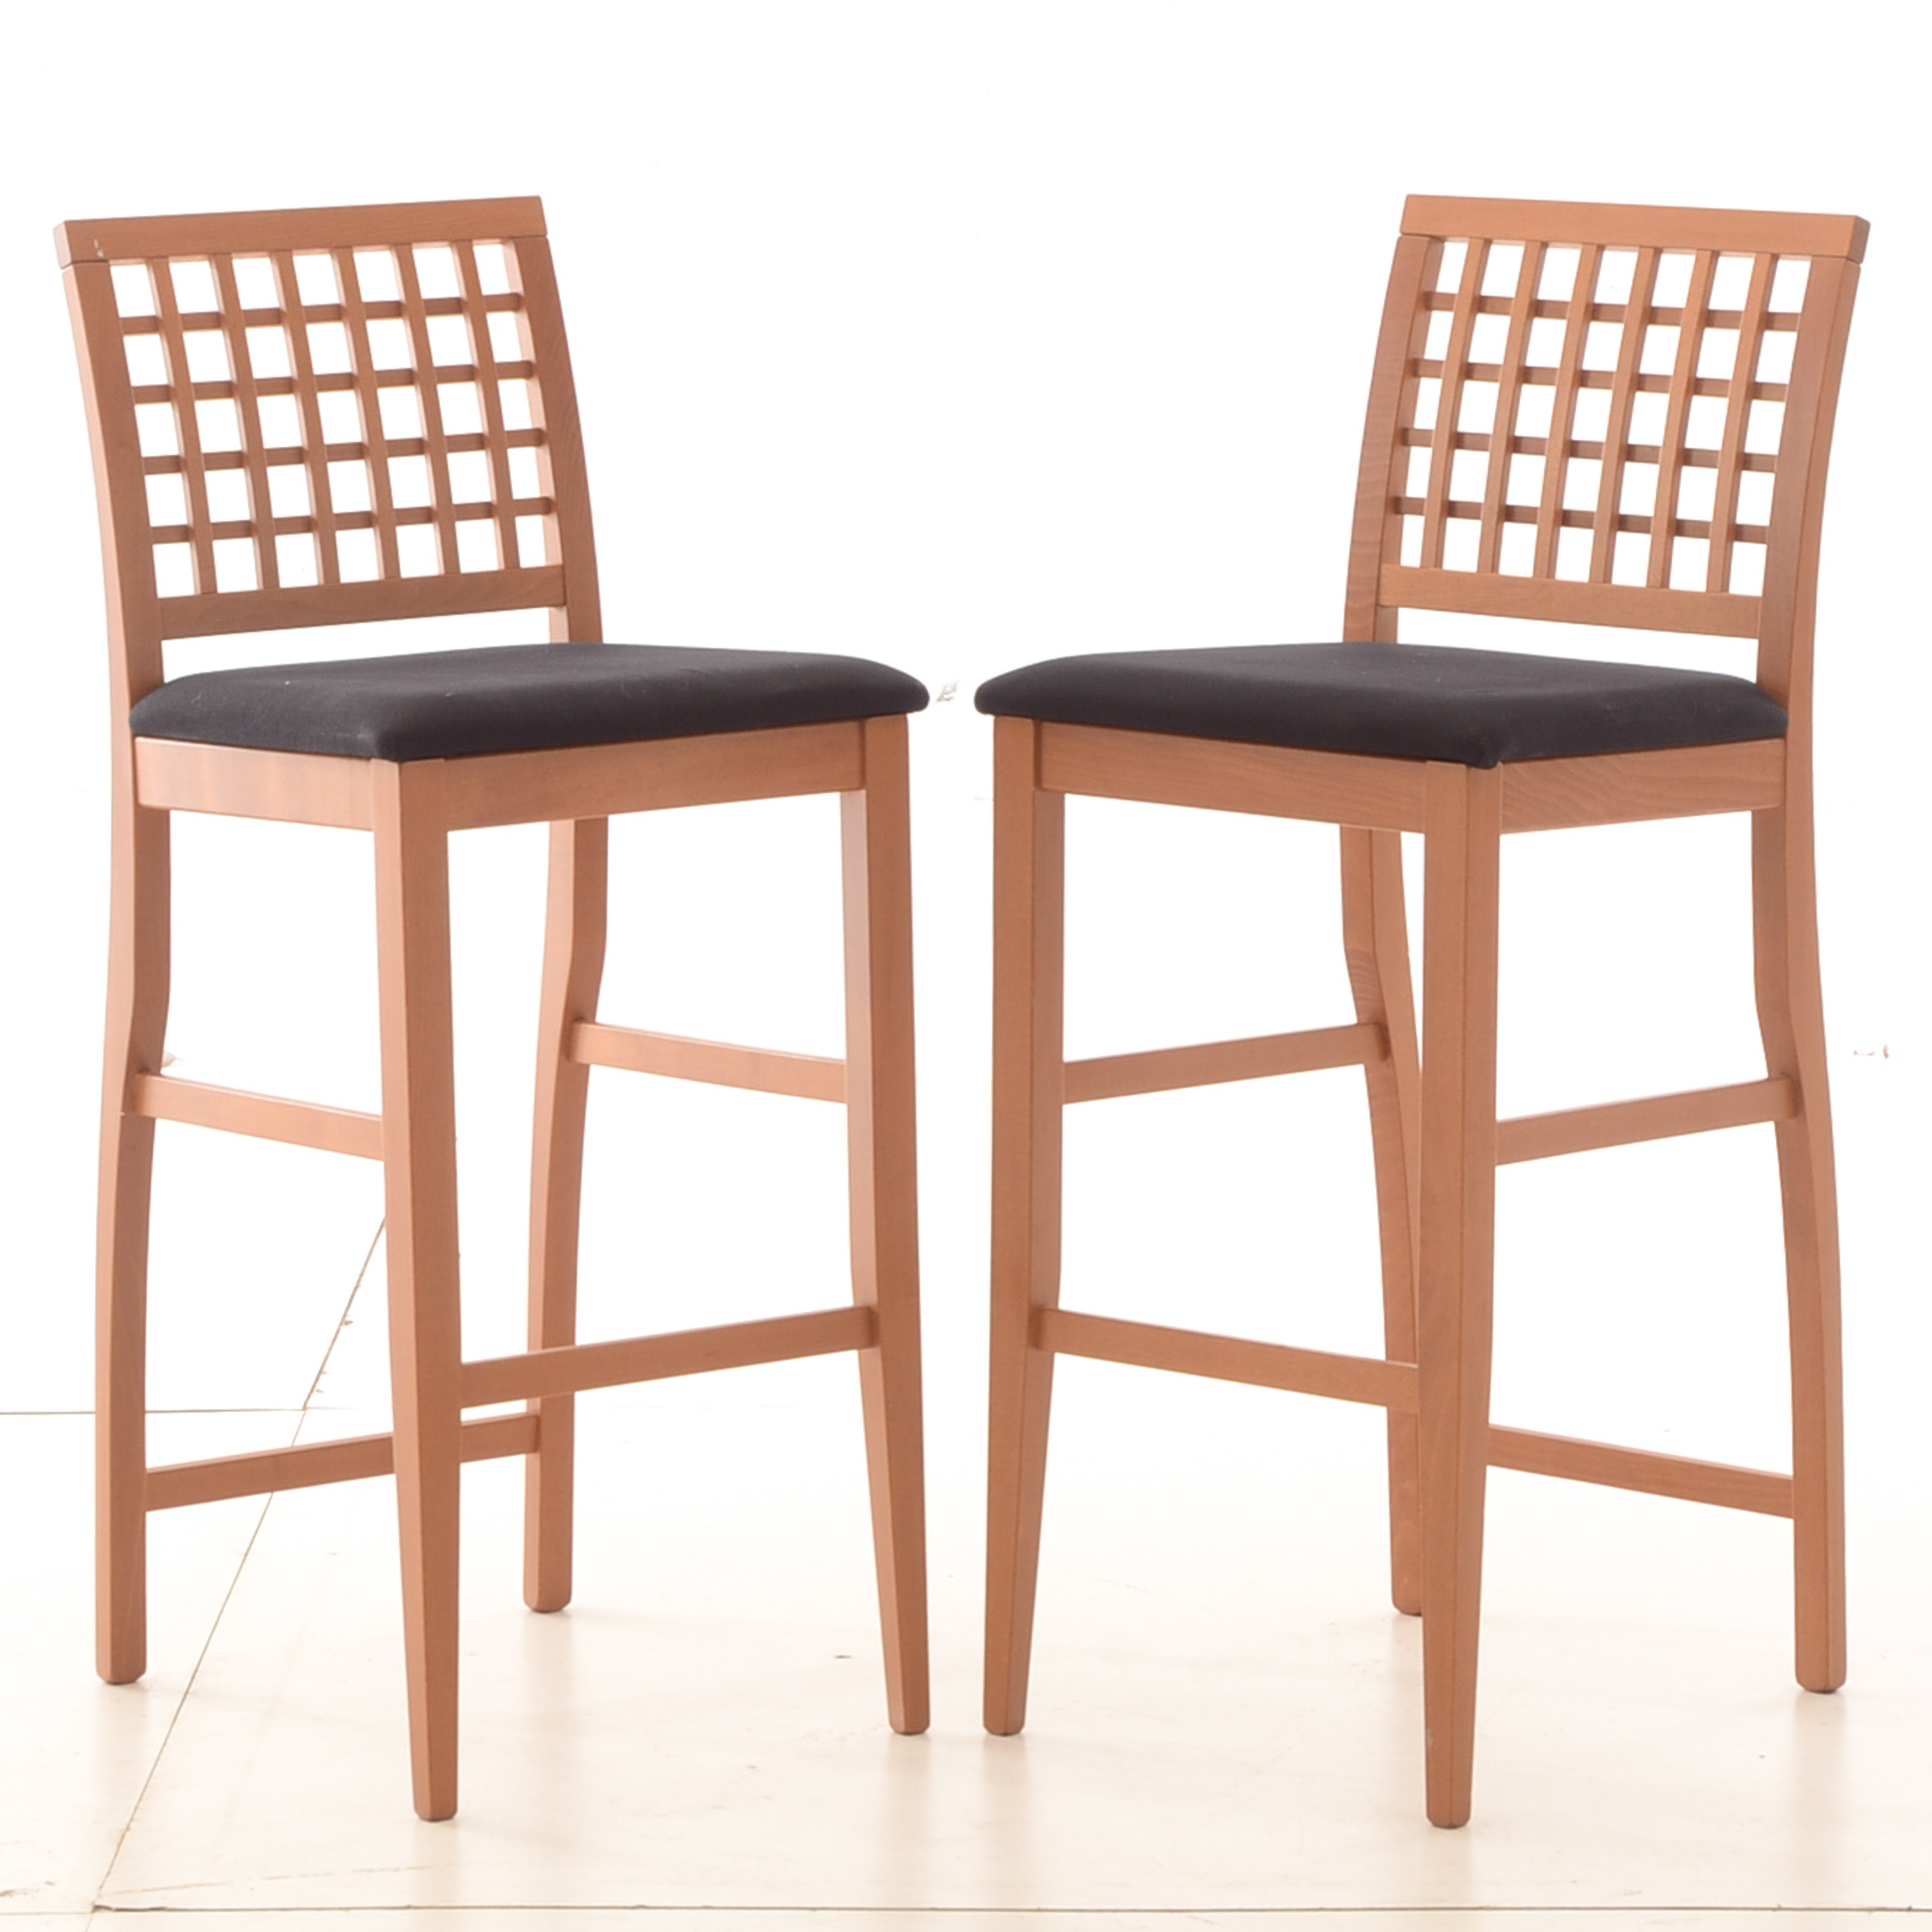 Linon Home Wooden Cross Slat Back Barstools with Upholstered Seats